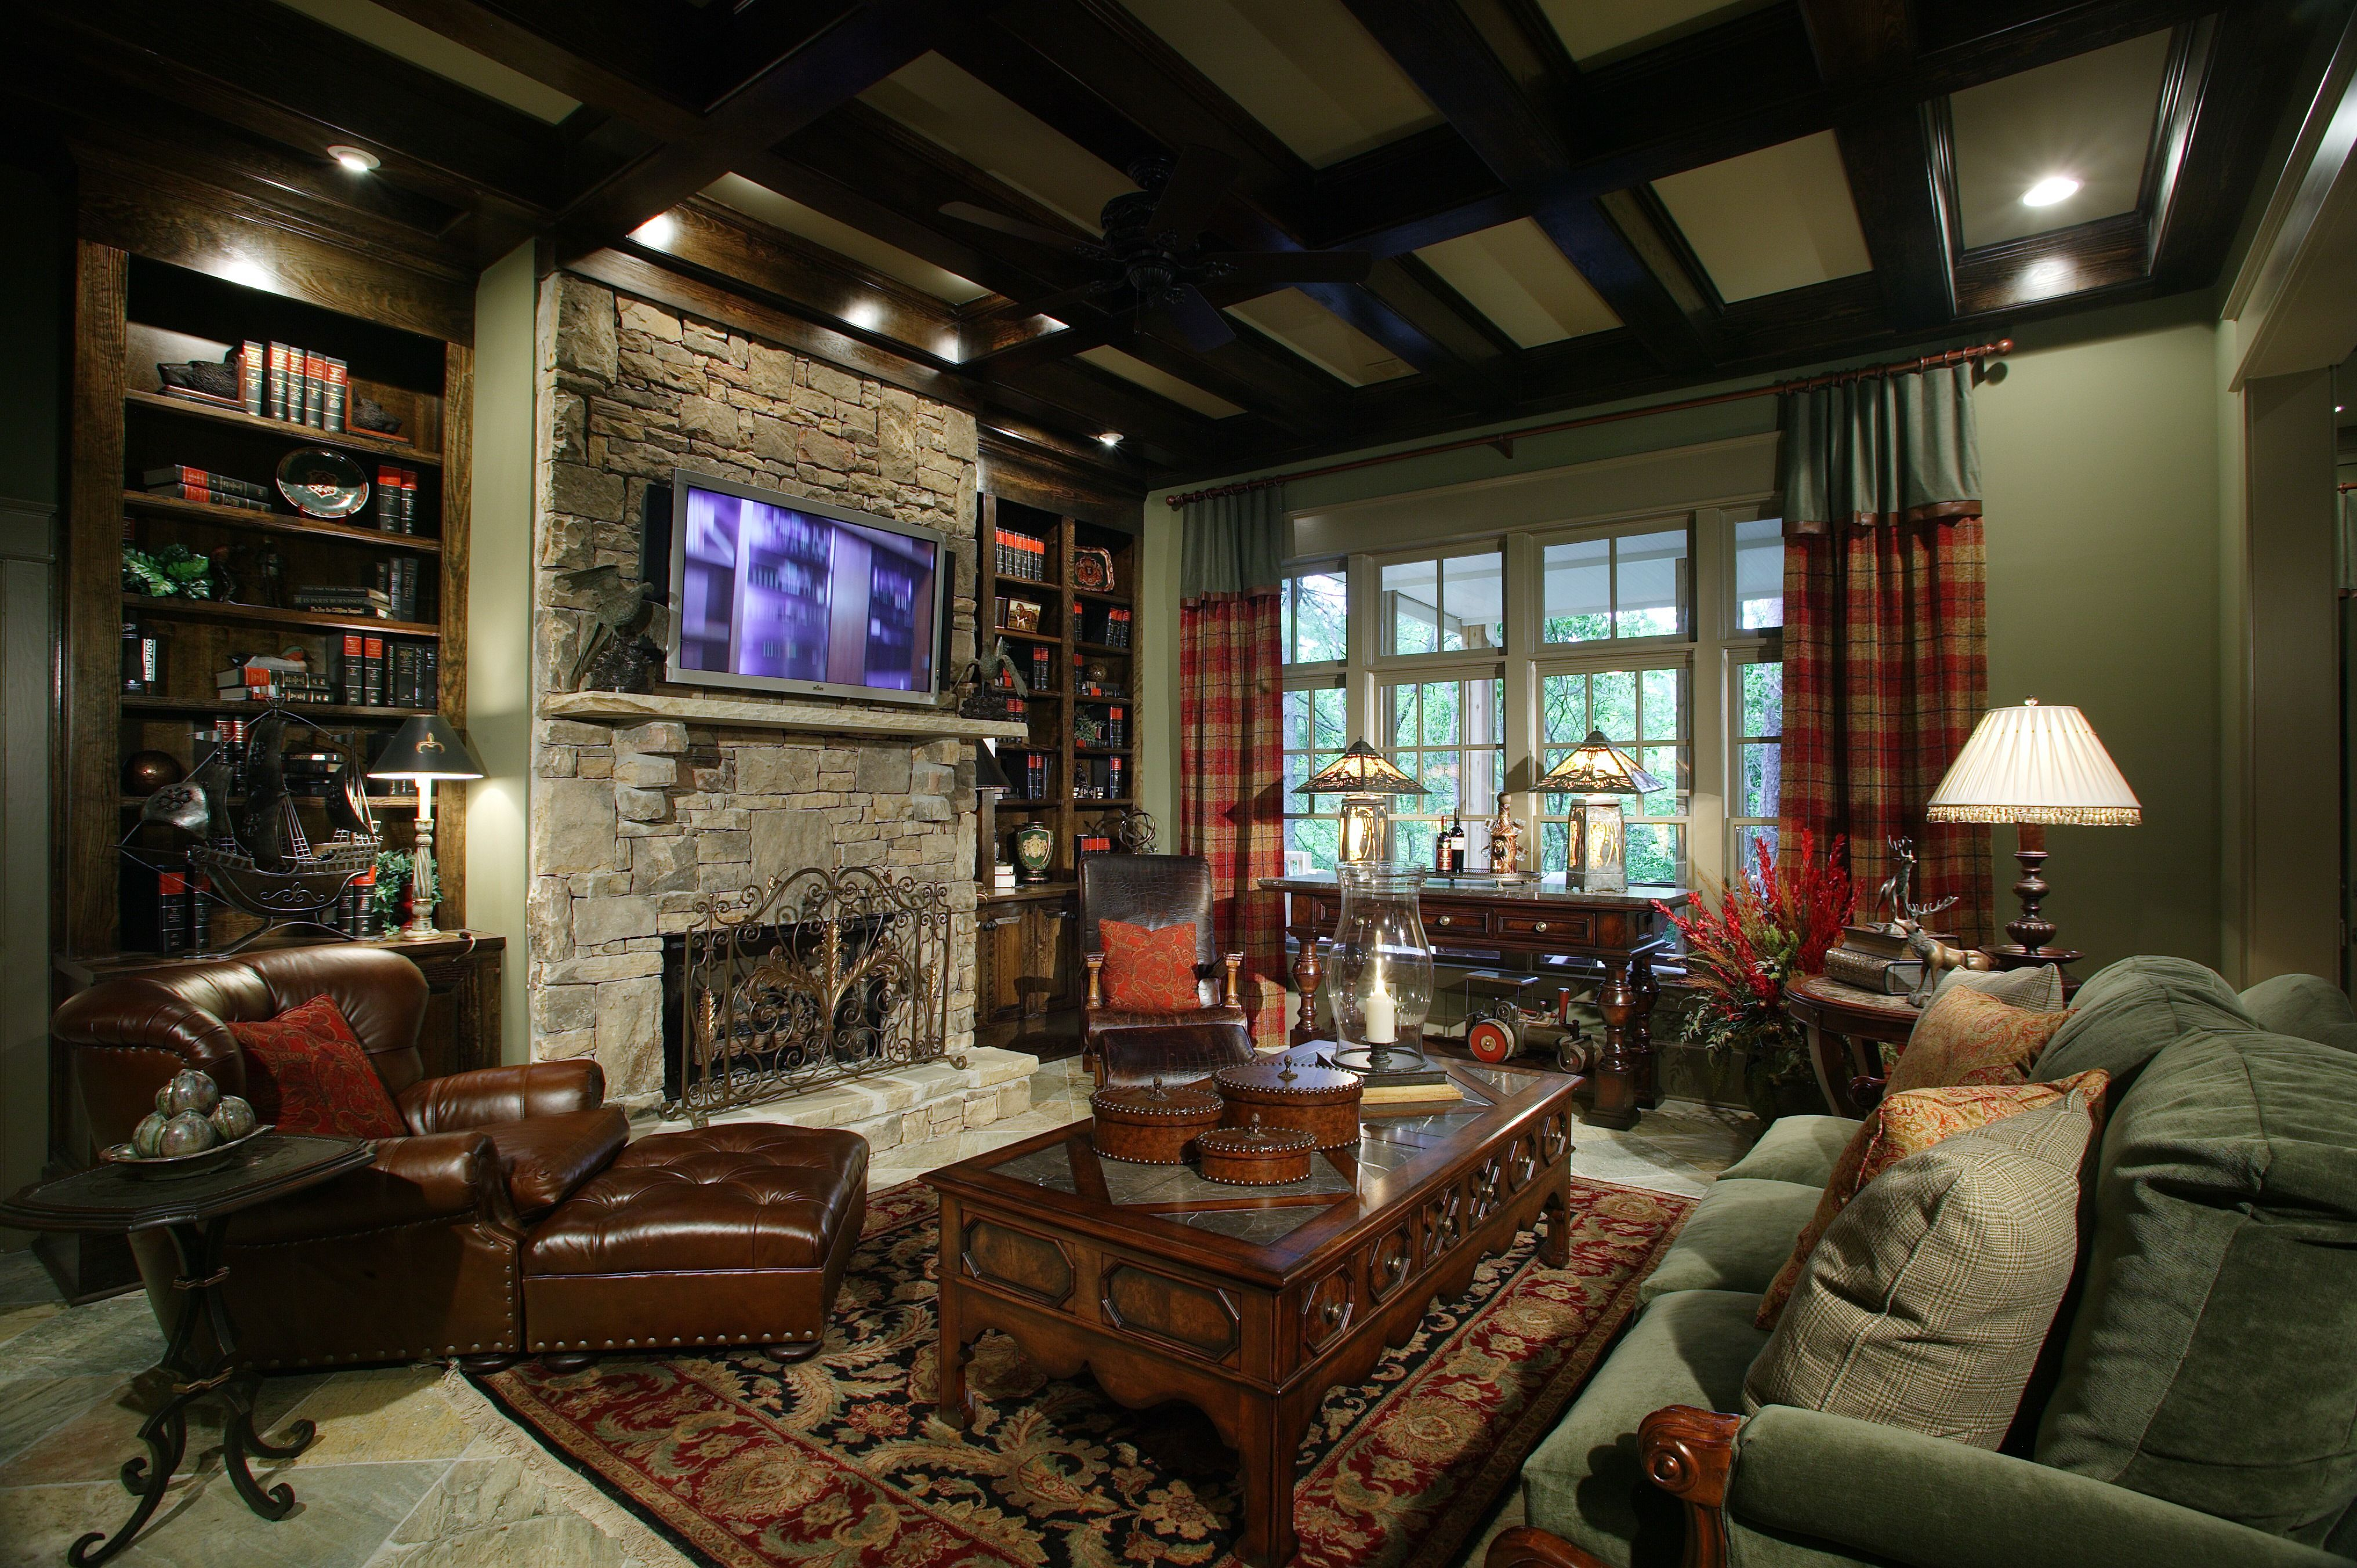 Ceiling Installation Cost Drop And Drywall Ceiling Prices Interior Design Family Room Family Room Rustic Family Room